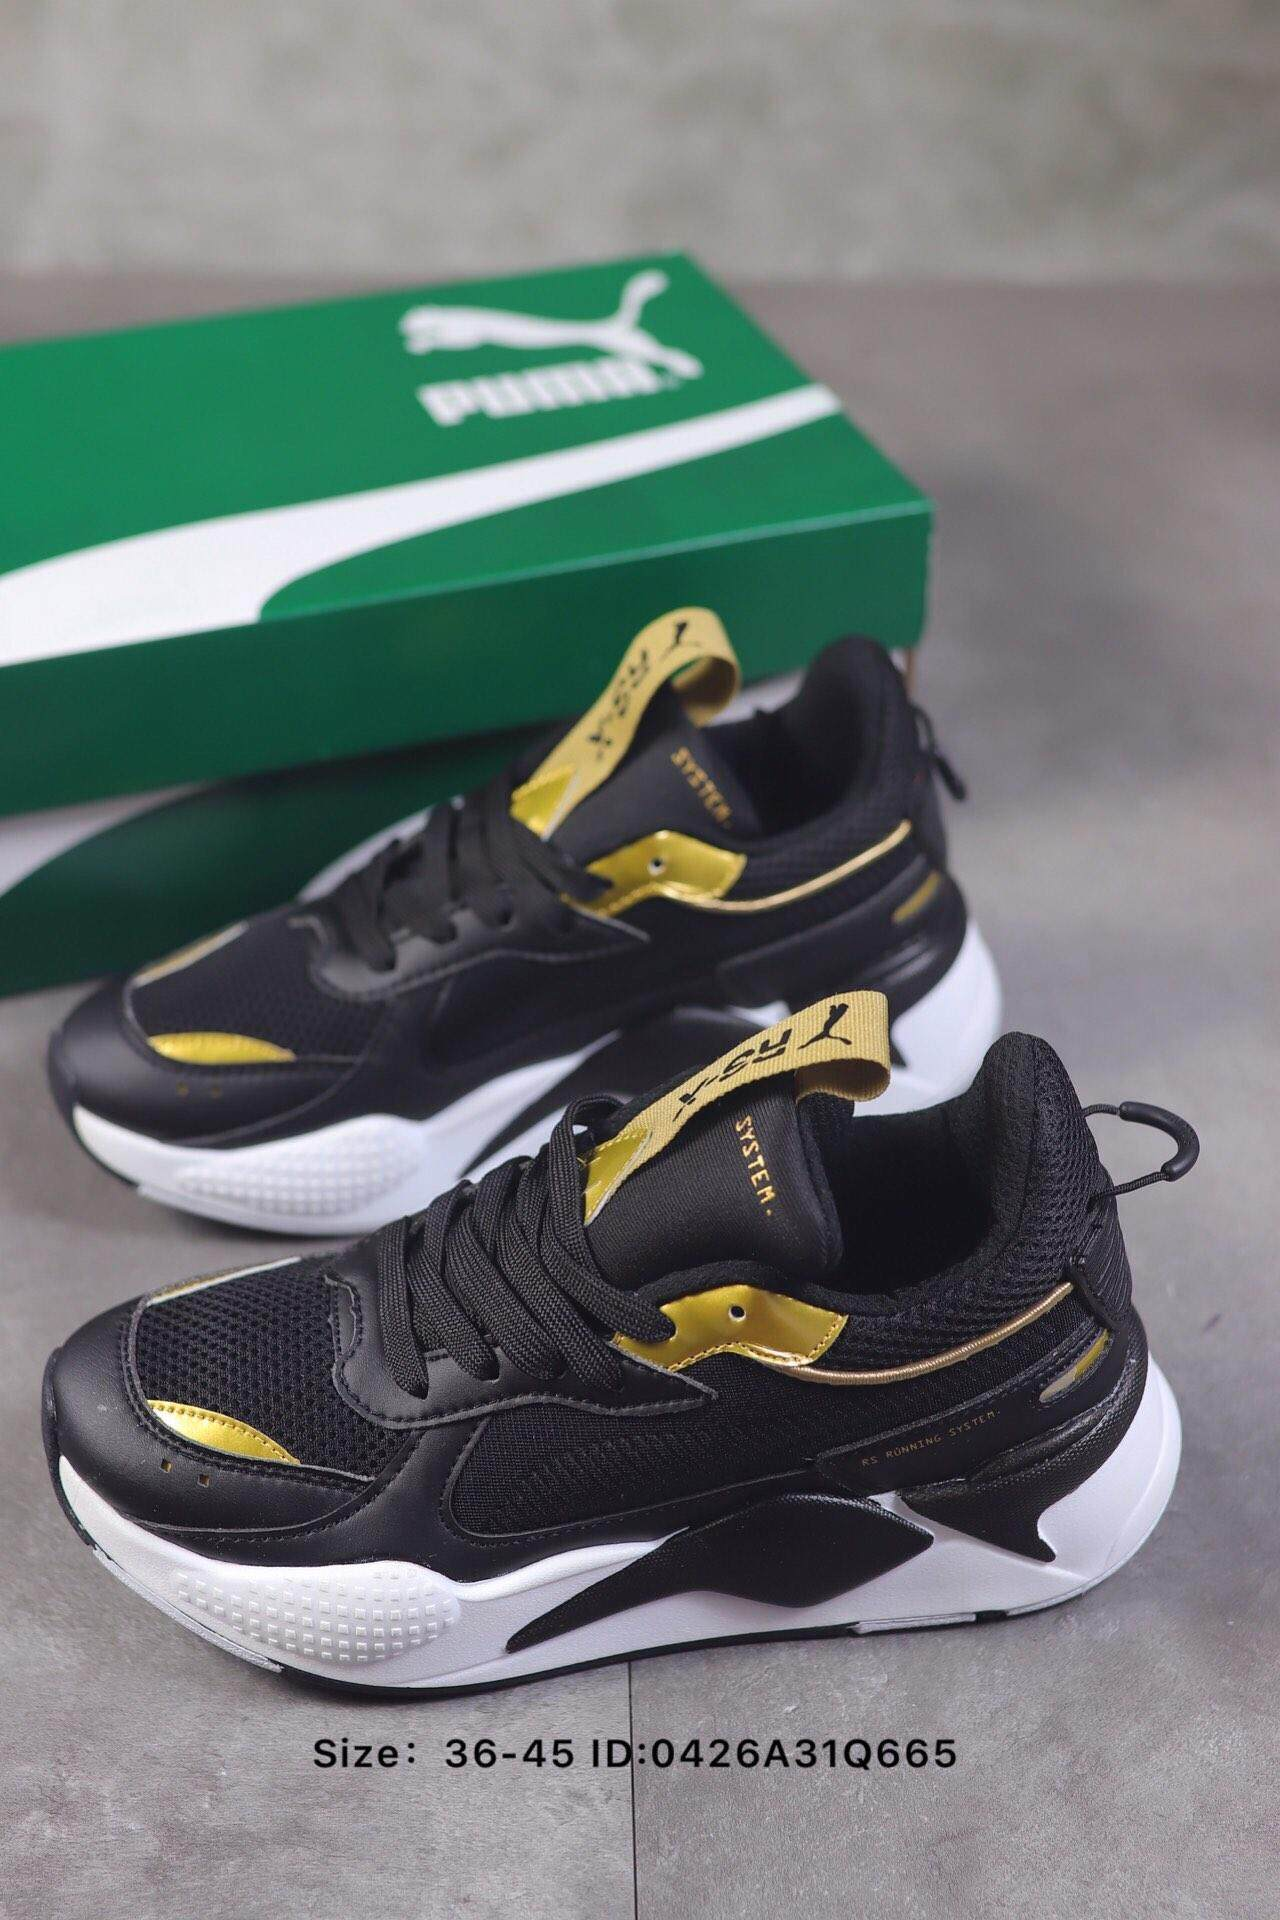 501b04cd08 Puma rs-x retro dad shoes for men and women casual sneakers running shoes  sport shoes